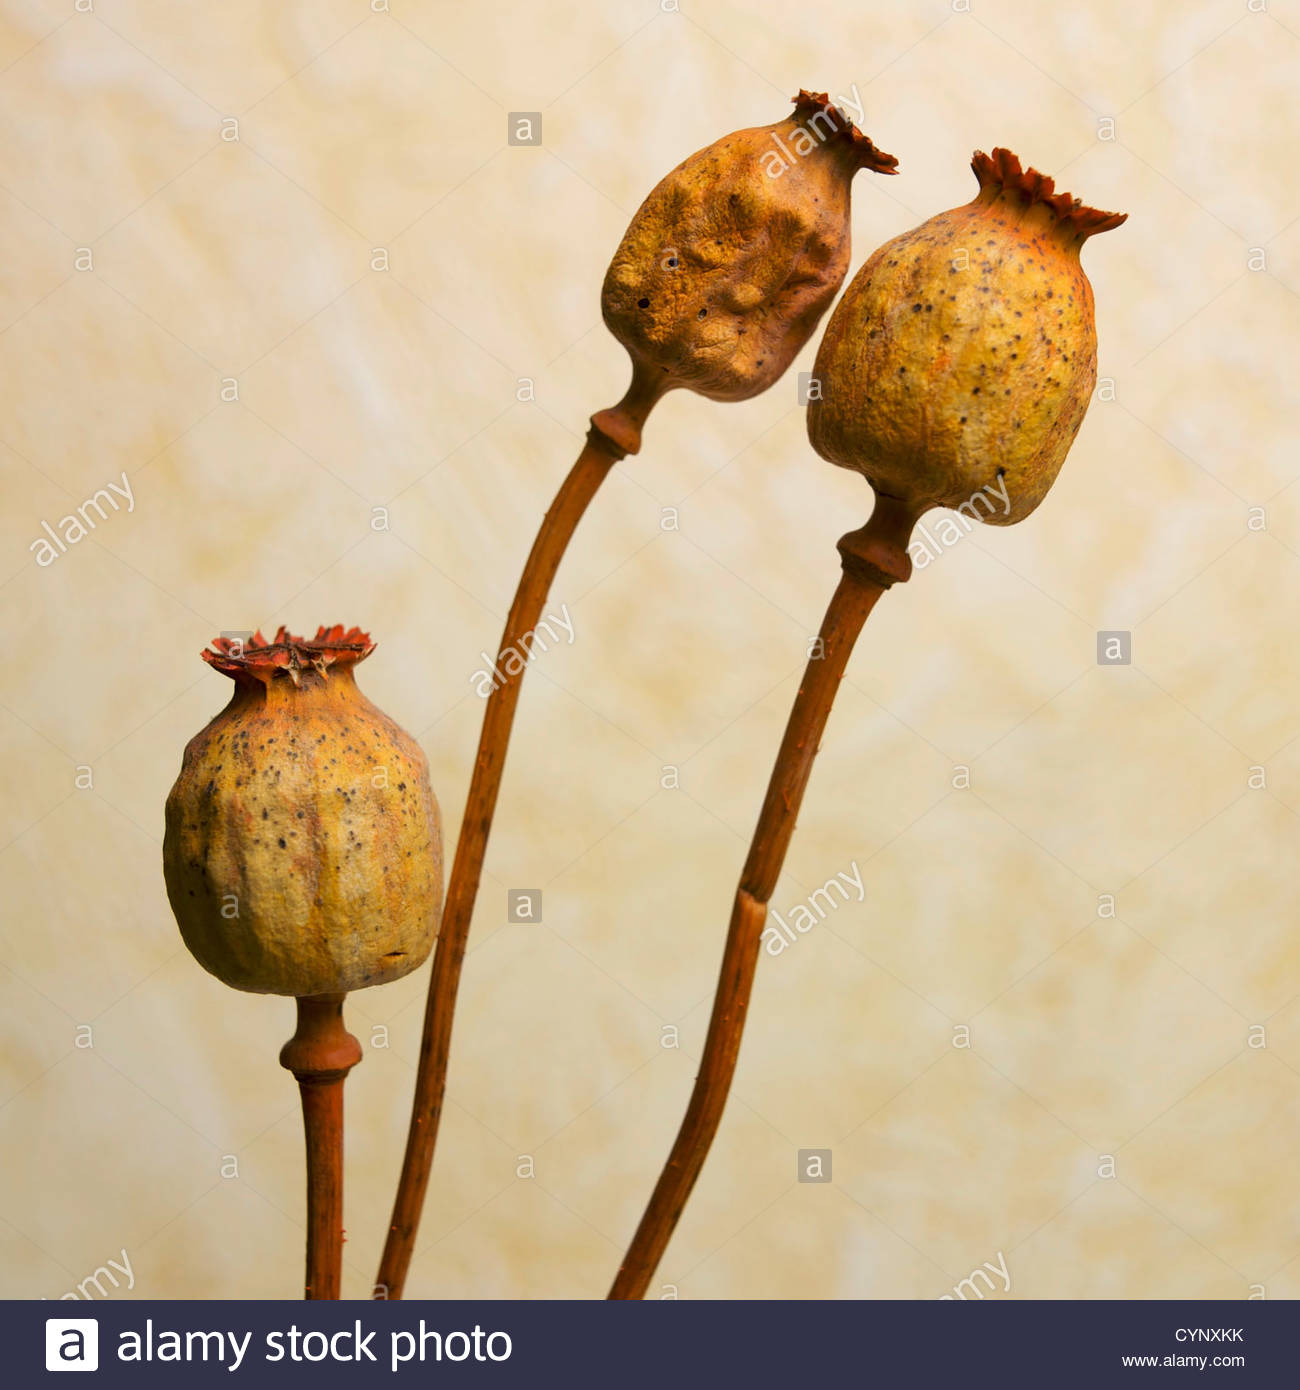 Opium Poppy Flowers And Seed Heads Stock Photos Opium Poppy